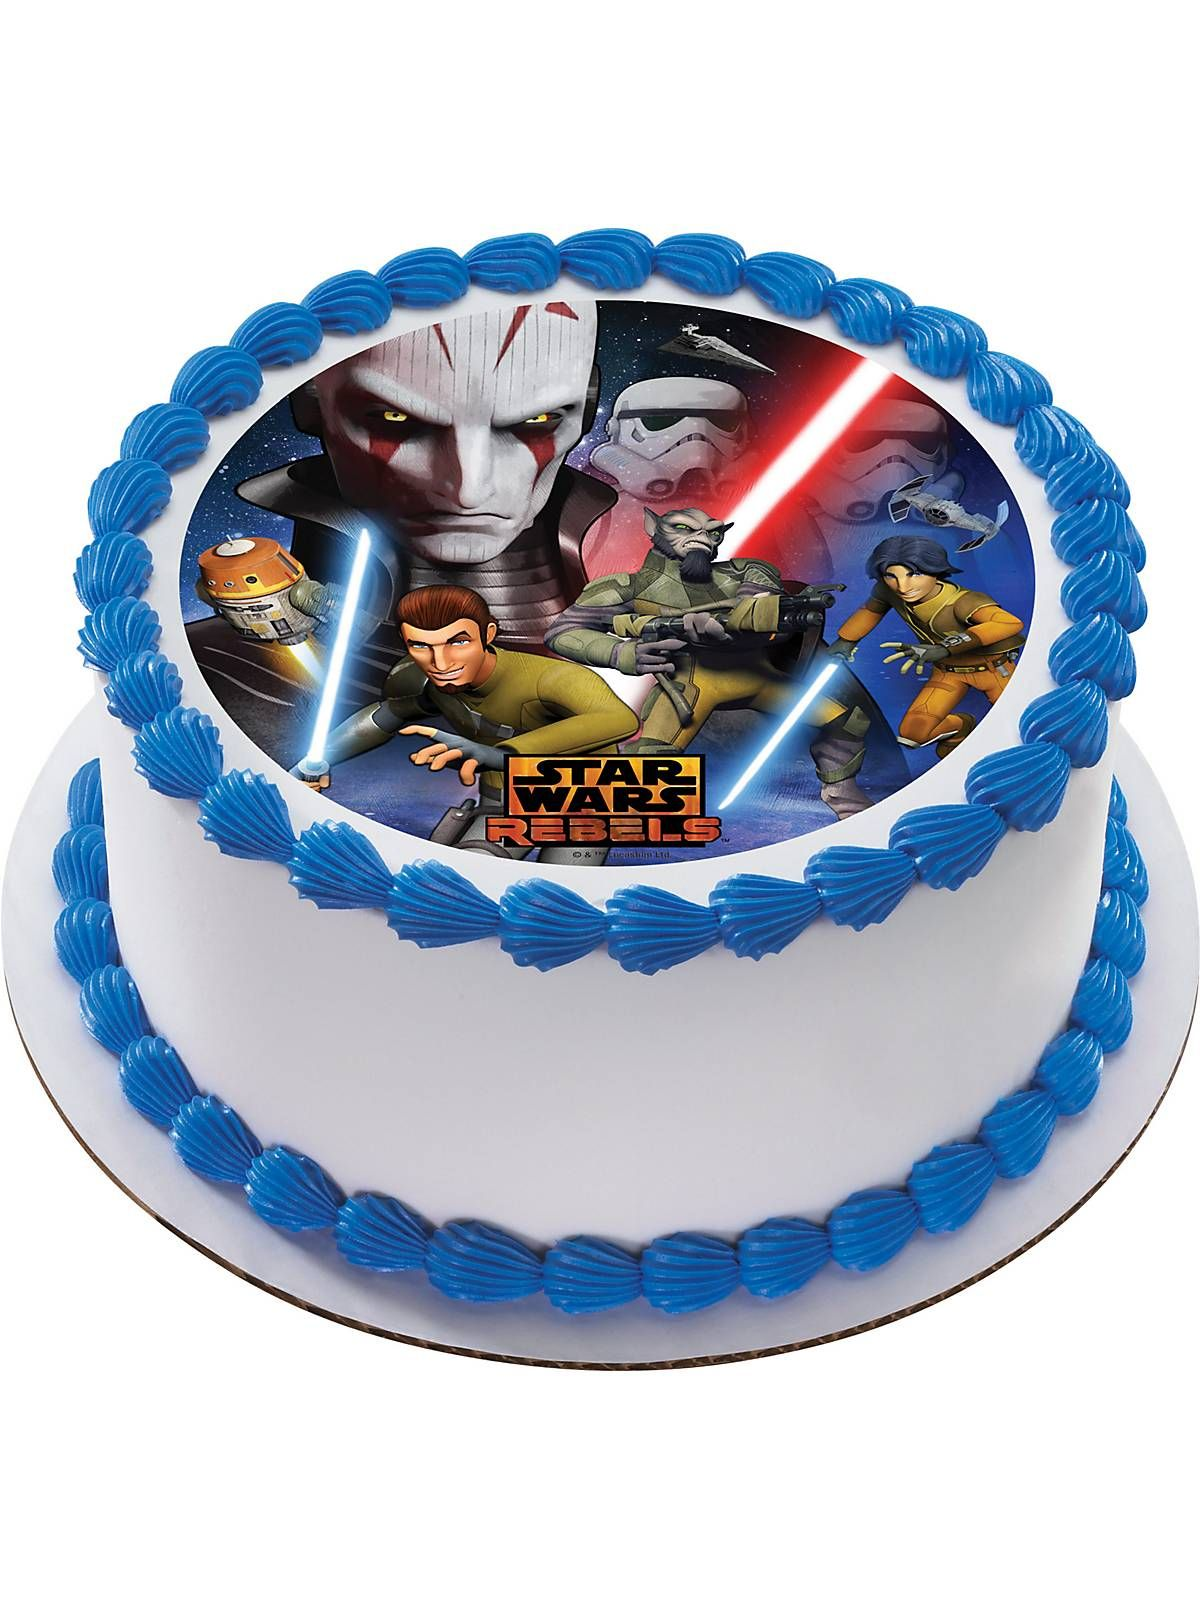 Star Wars Rebels 75 Round Edible Cake Topper Cheap Party